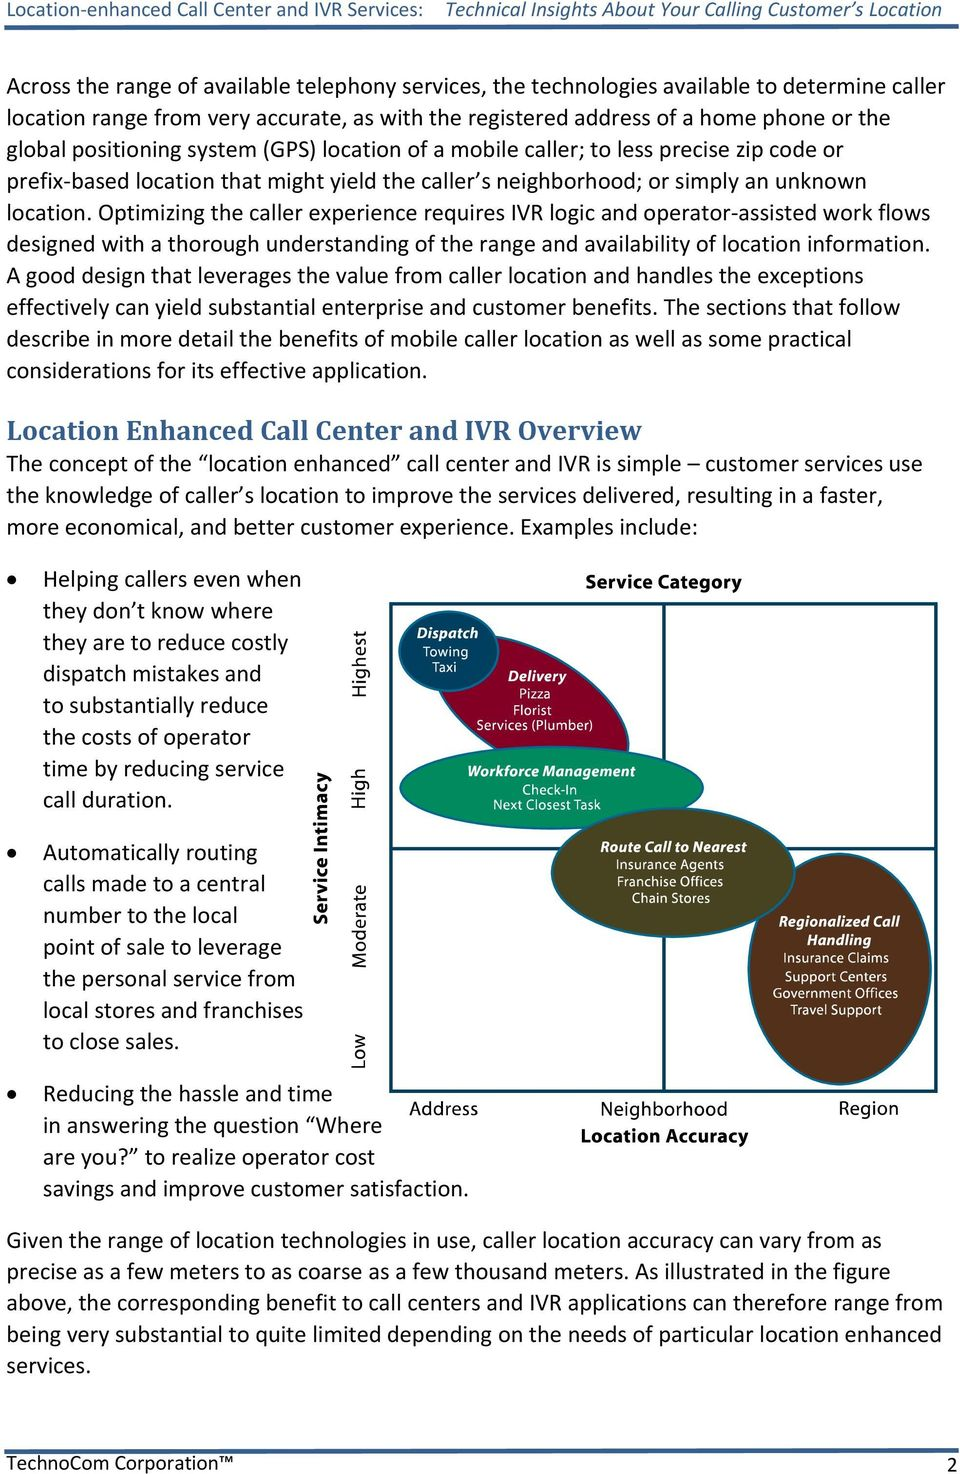 Optimizing the caller experience requires IVR logic and operator assisted work flows designed with a thorough understanding of the range and availability of location information.